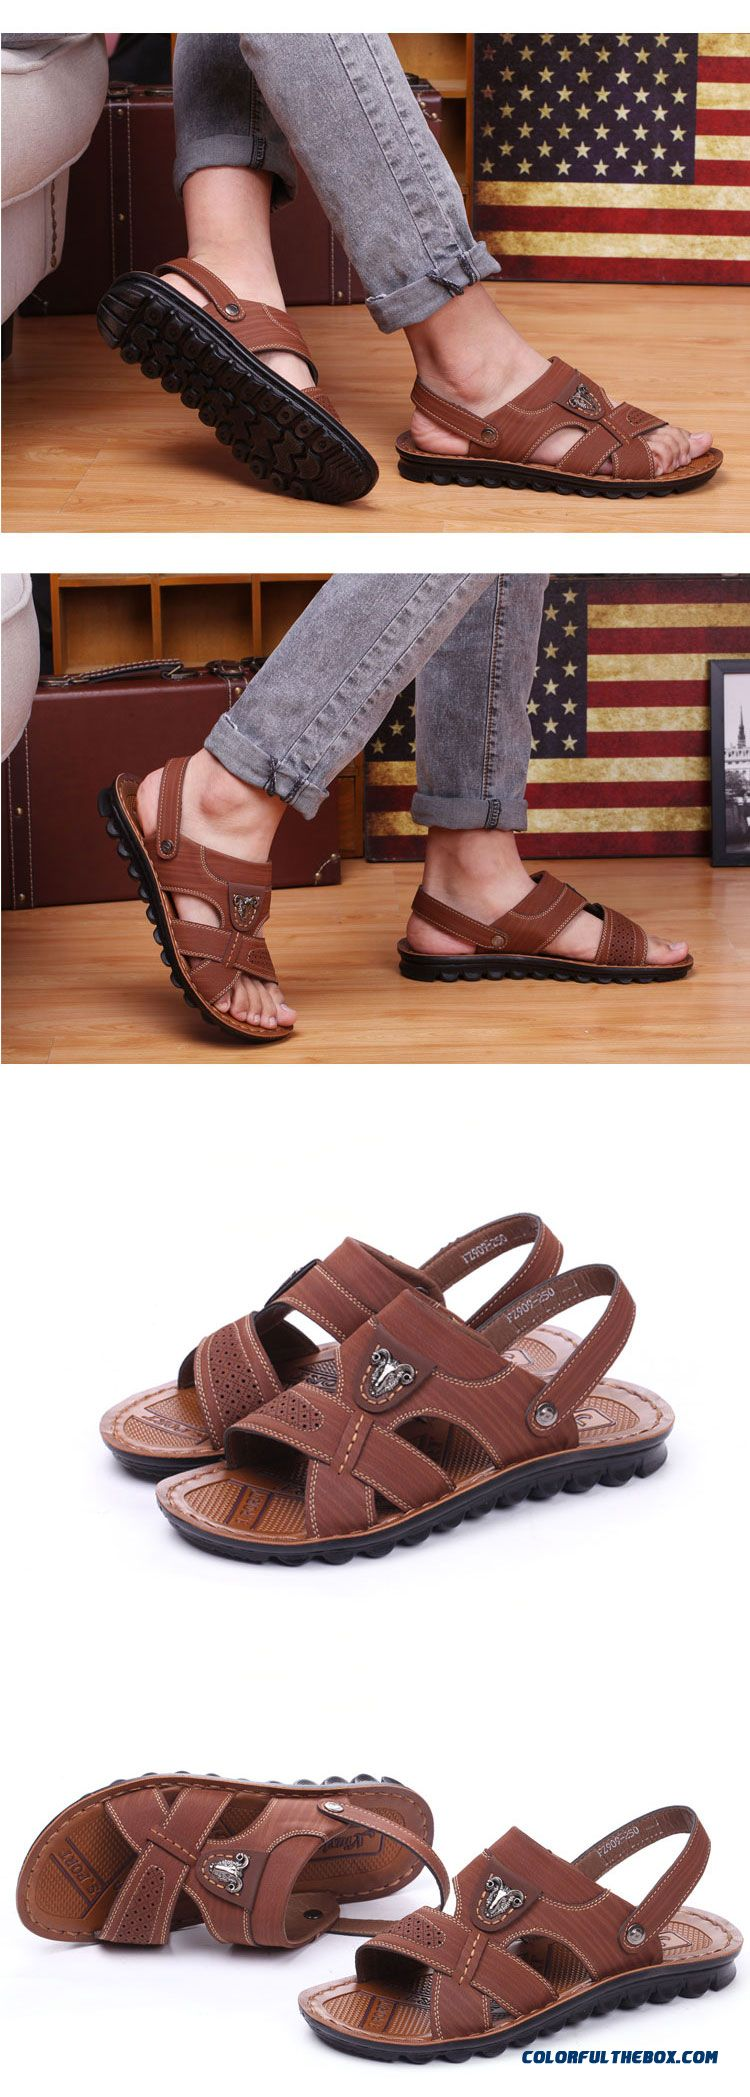 Young Men Summer Sandals Round-toe Leather Beach Shoes - detail images